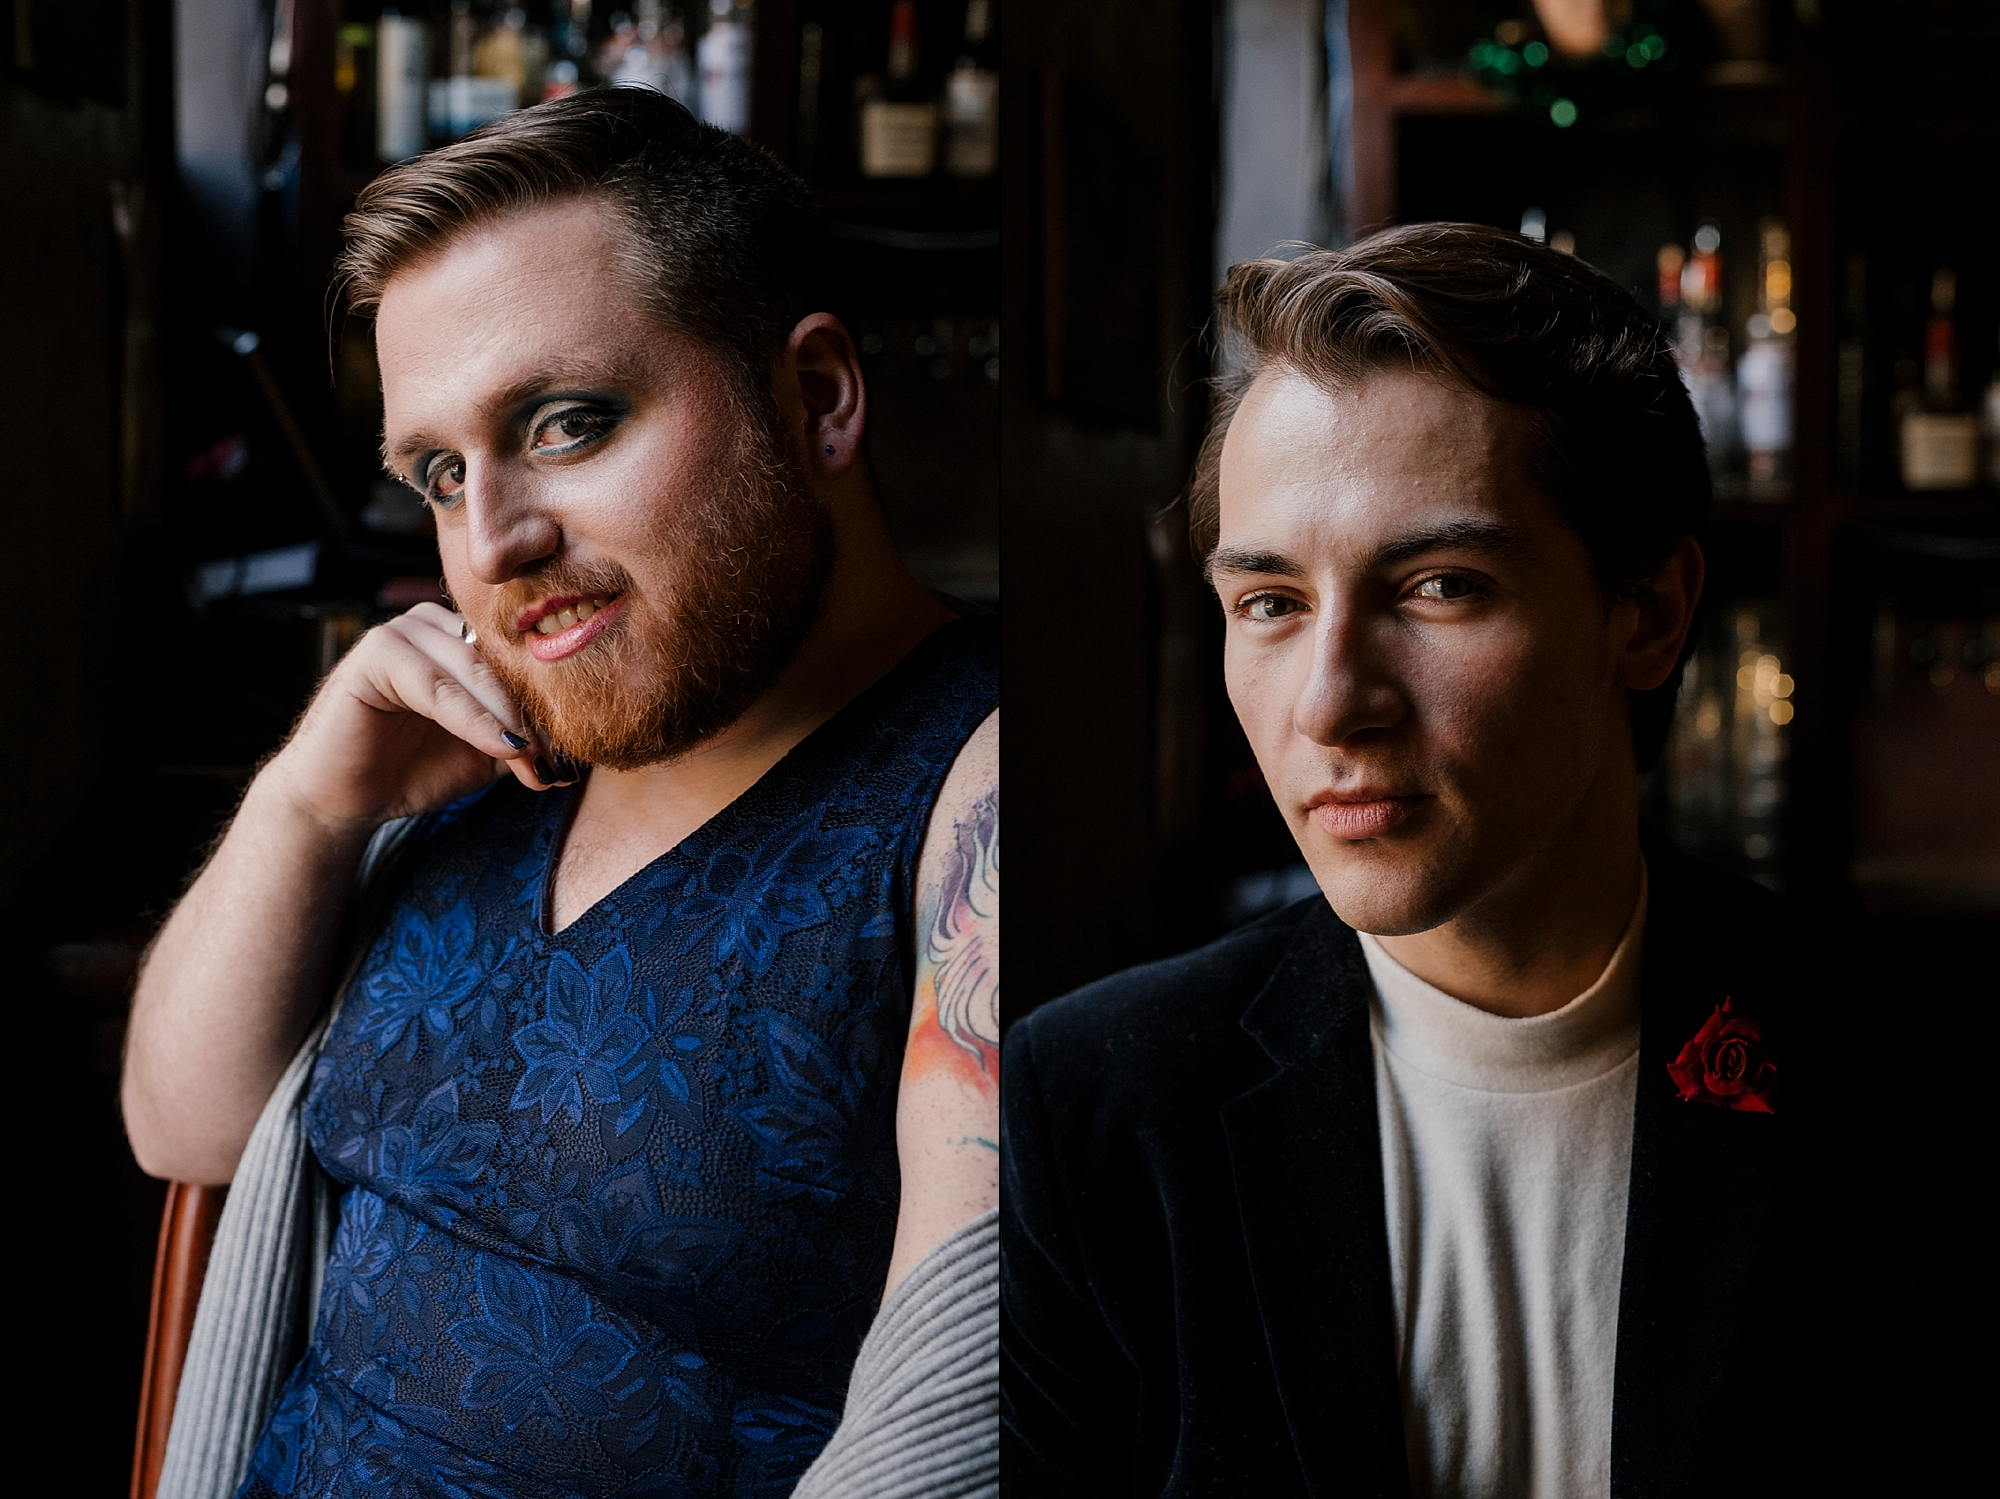 Joe_Mac_Creative_Philadelphia_Philly_LGBT_Gay_Engagement_Wedding_Photography__0138.jpg